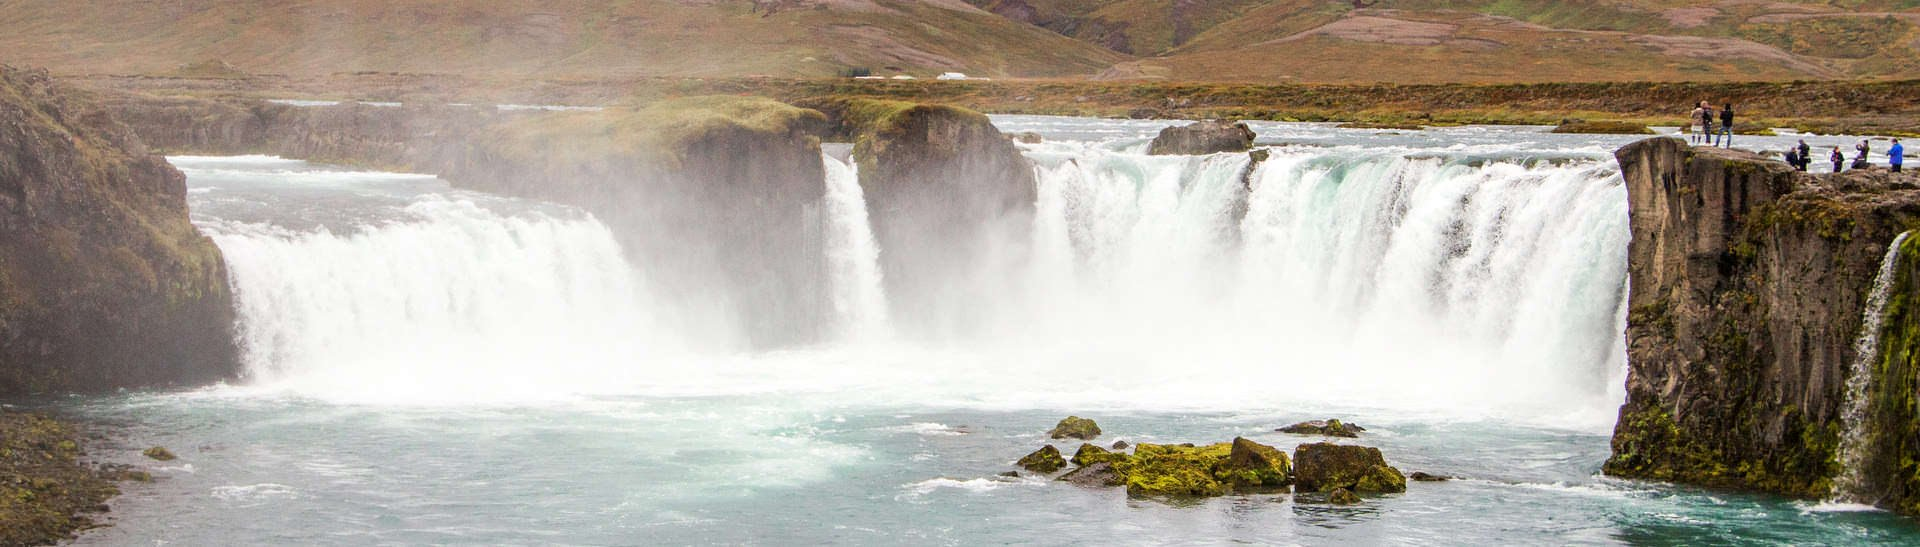 Iceland waterfalls are among the most awe-inspiring attractions in Scandinavia